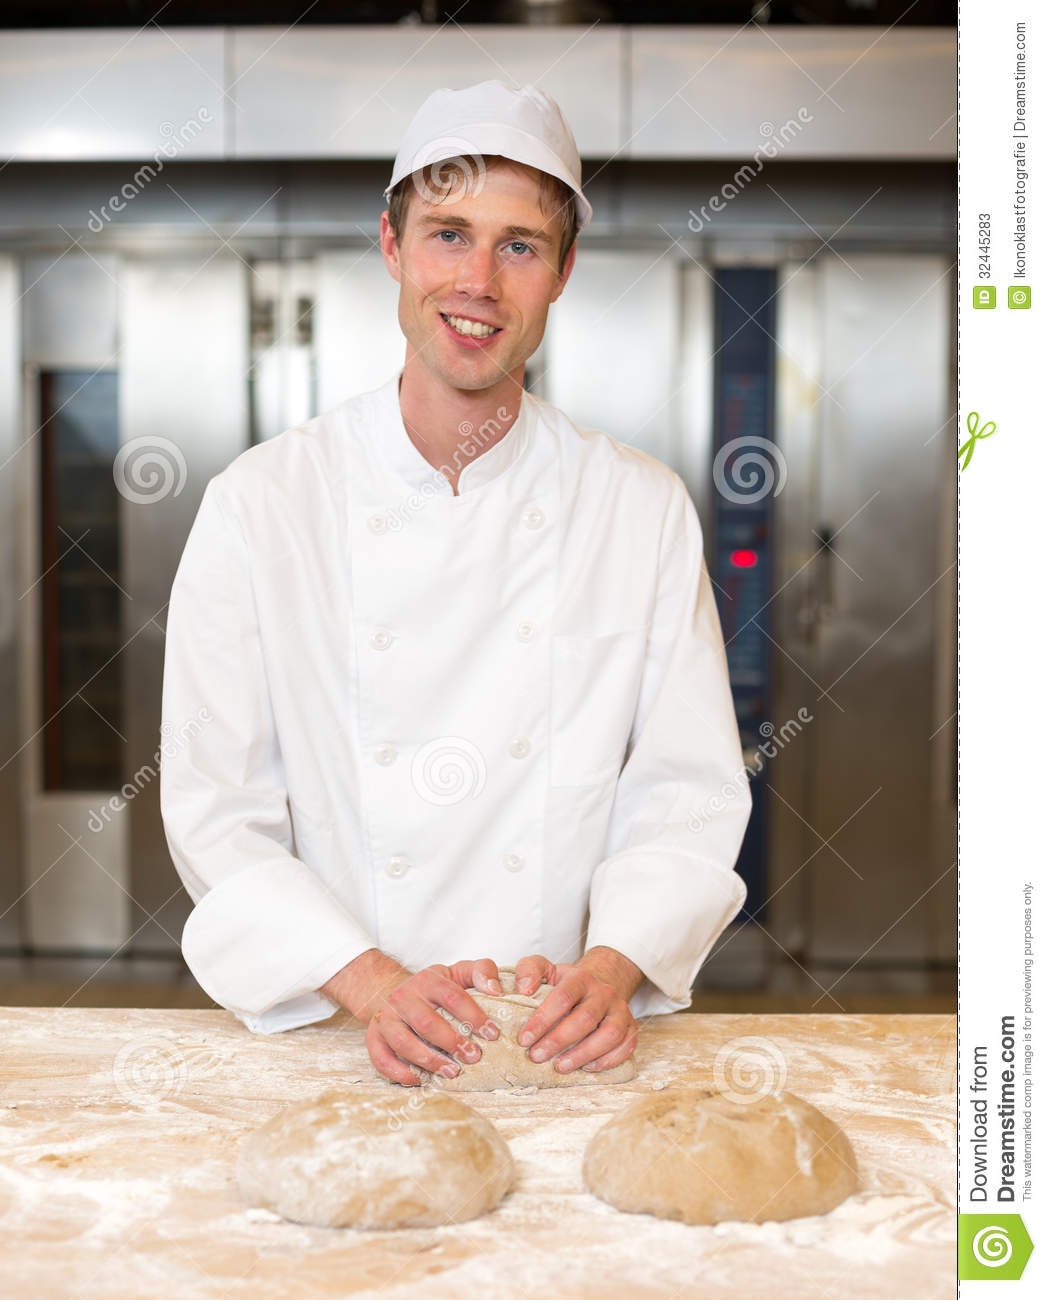 Smiling Baker Kneading Dough In Bakery Stock Photos - Image: 32445283